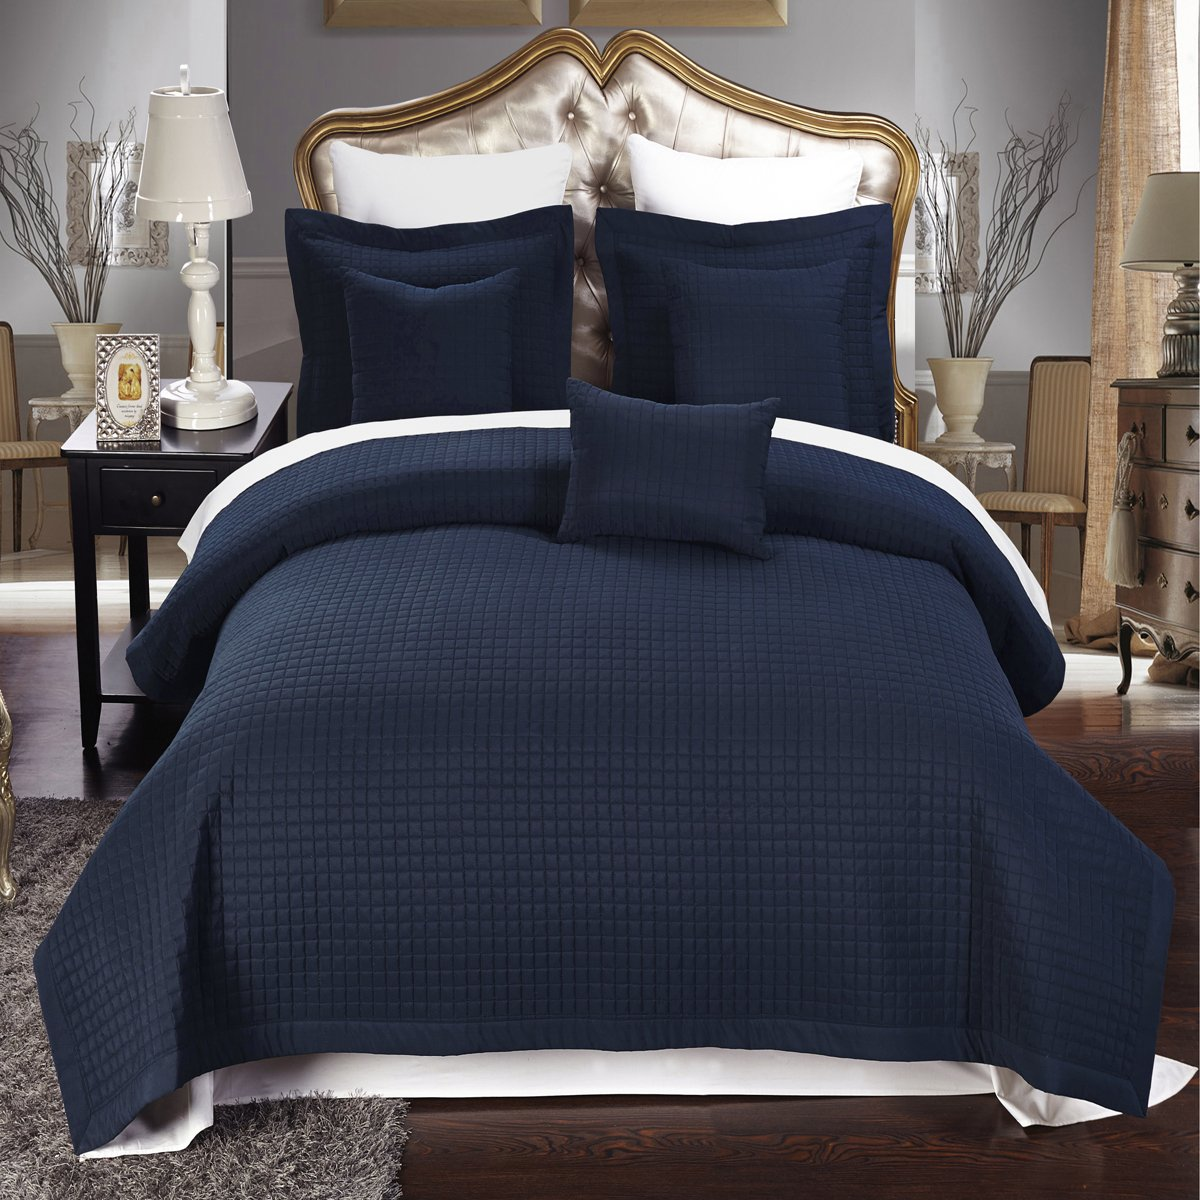 Amazon.com: Full / Queen size Navy Coverlet 3pc set, Luxury ... : blue quilts bedding - Adamdwight.com